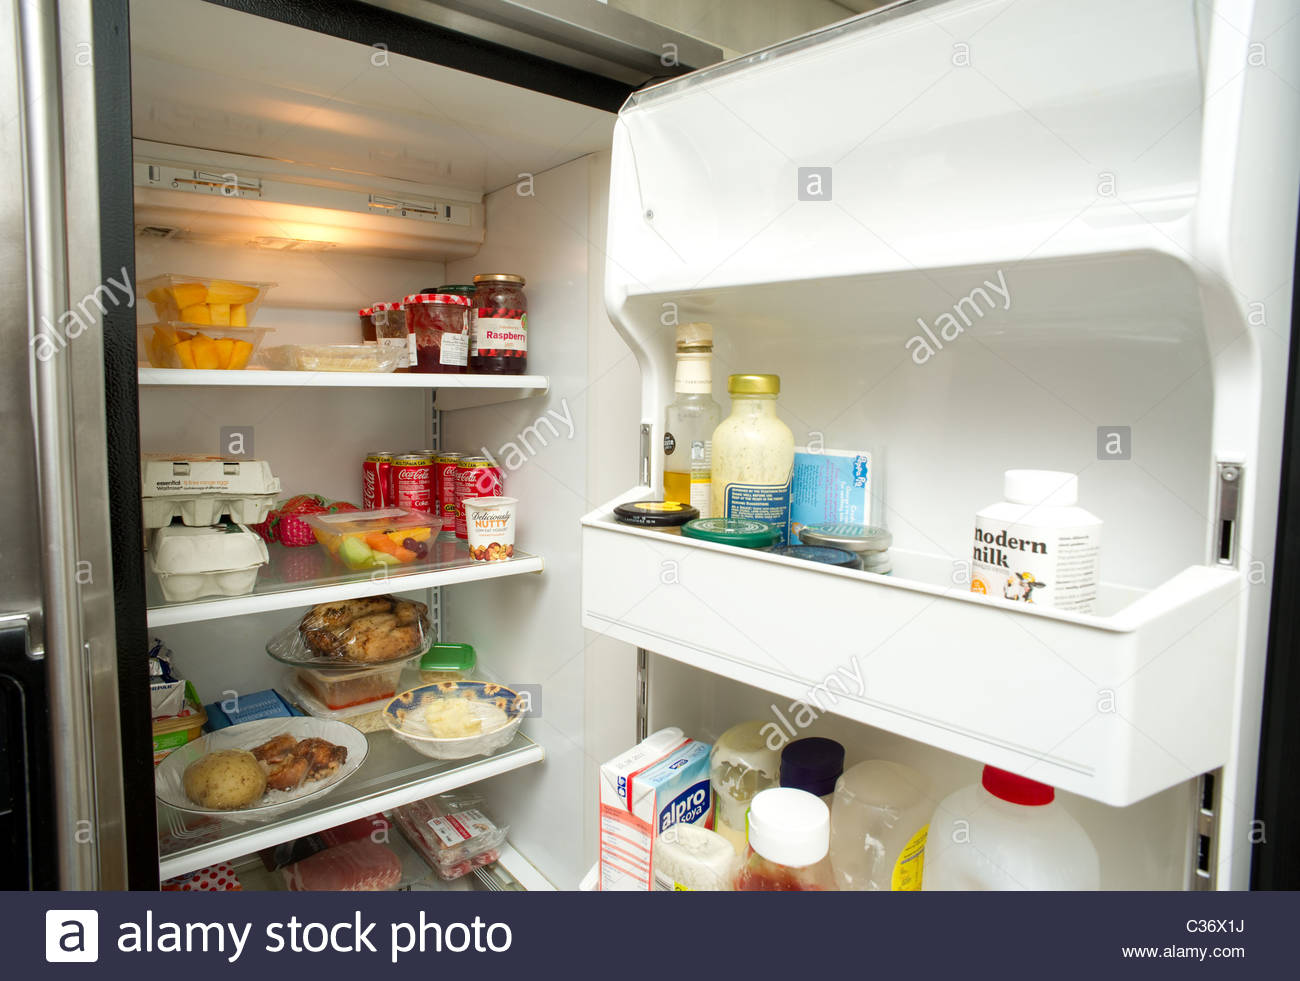 Modern kitchen fridge refrigerator - Stock Image